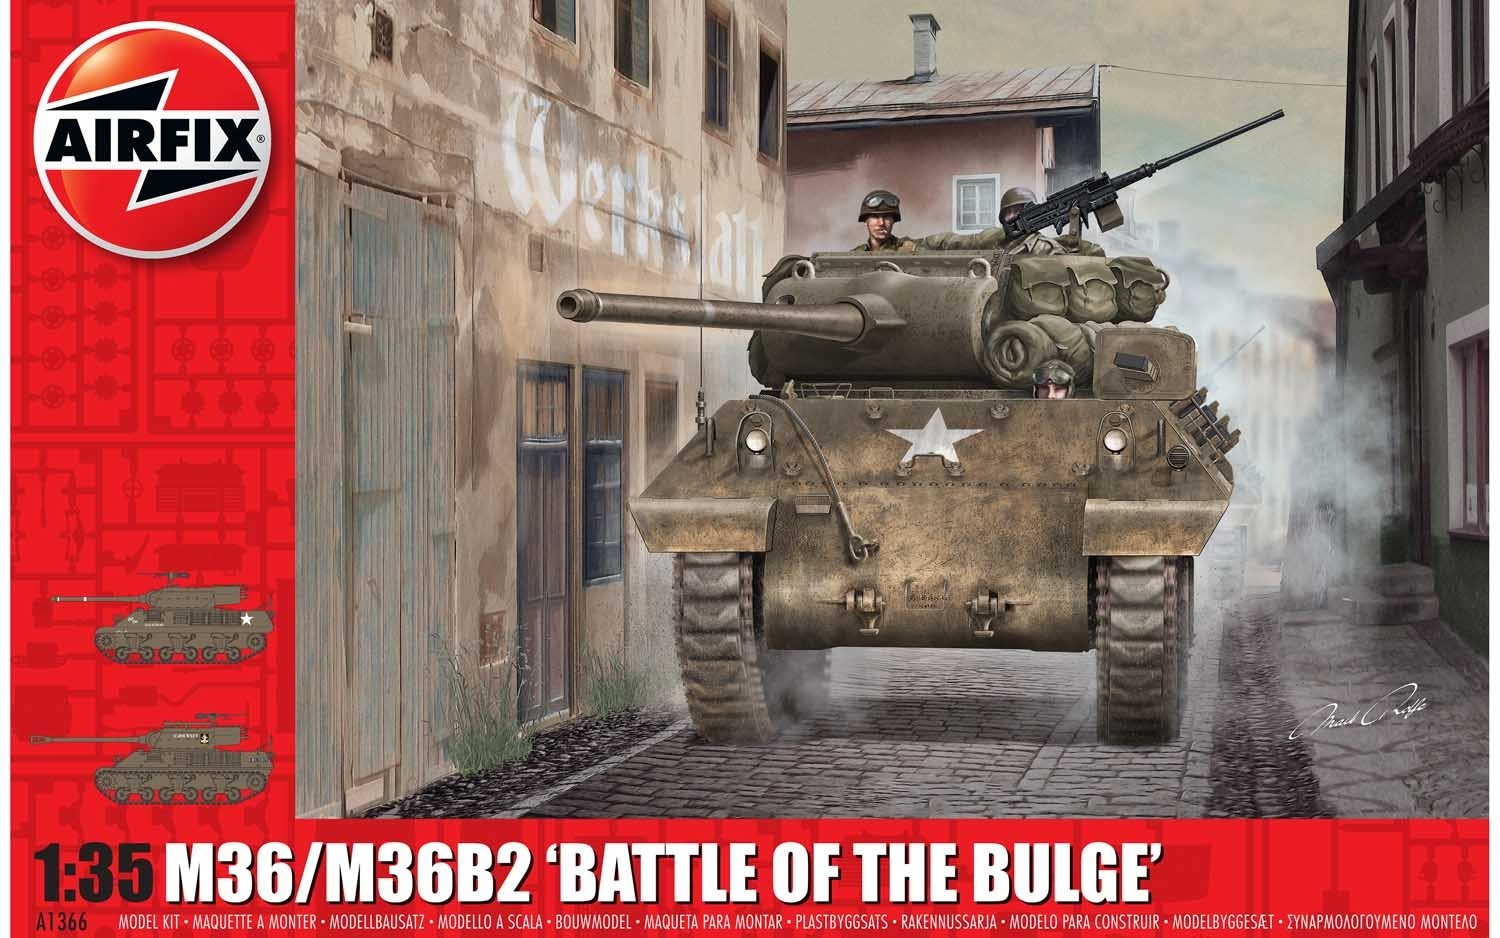 M36/M36B2, Battle of the Bulge